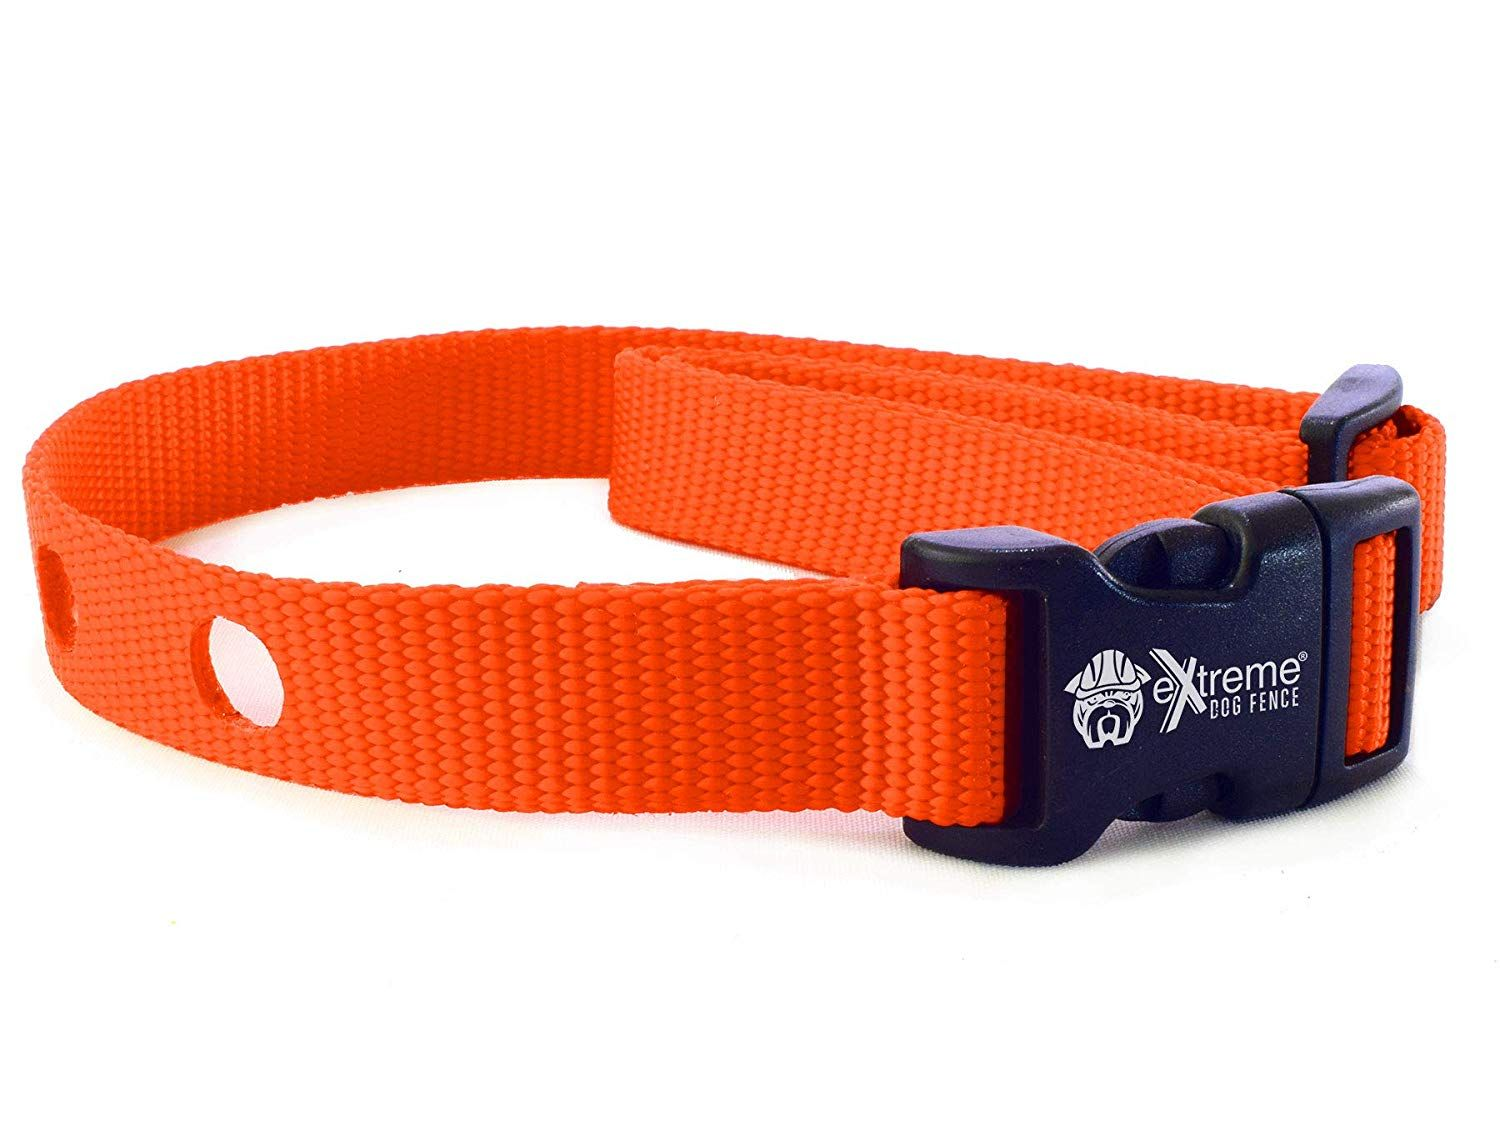 Extreme Dog Fence Dog Collar Replacement Strap Compatible With